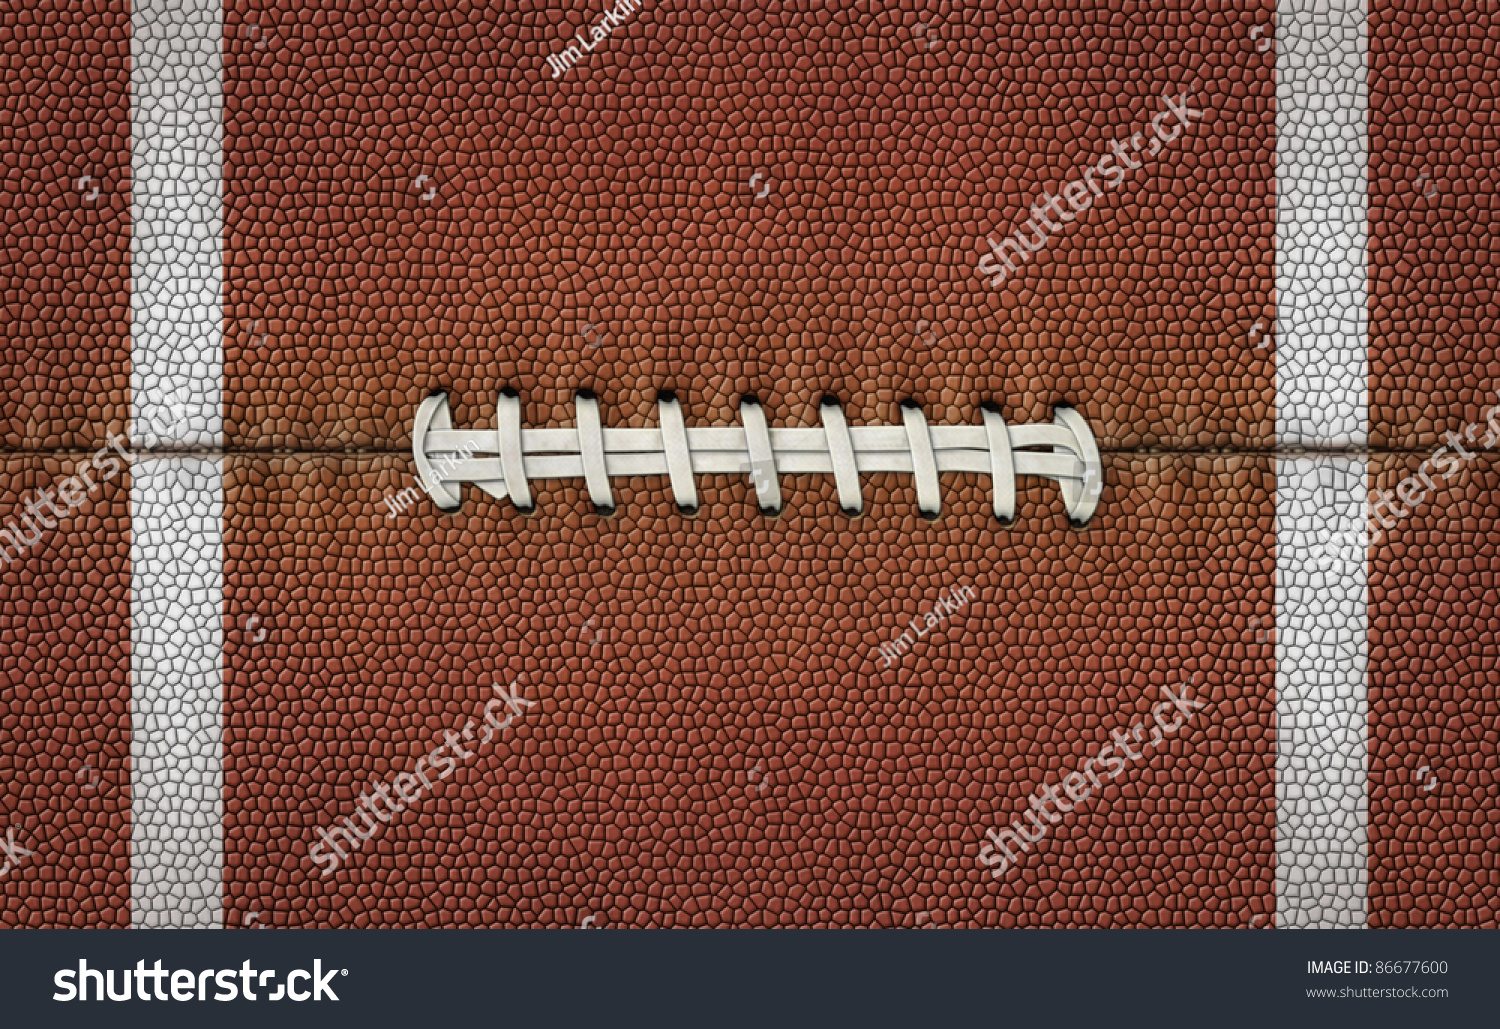 Football laces texture